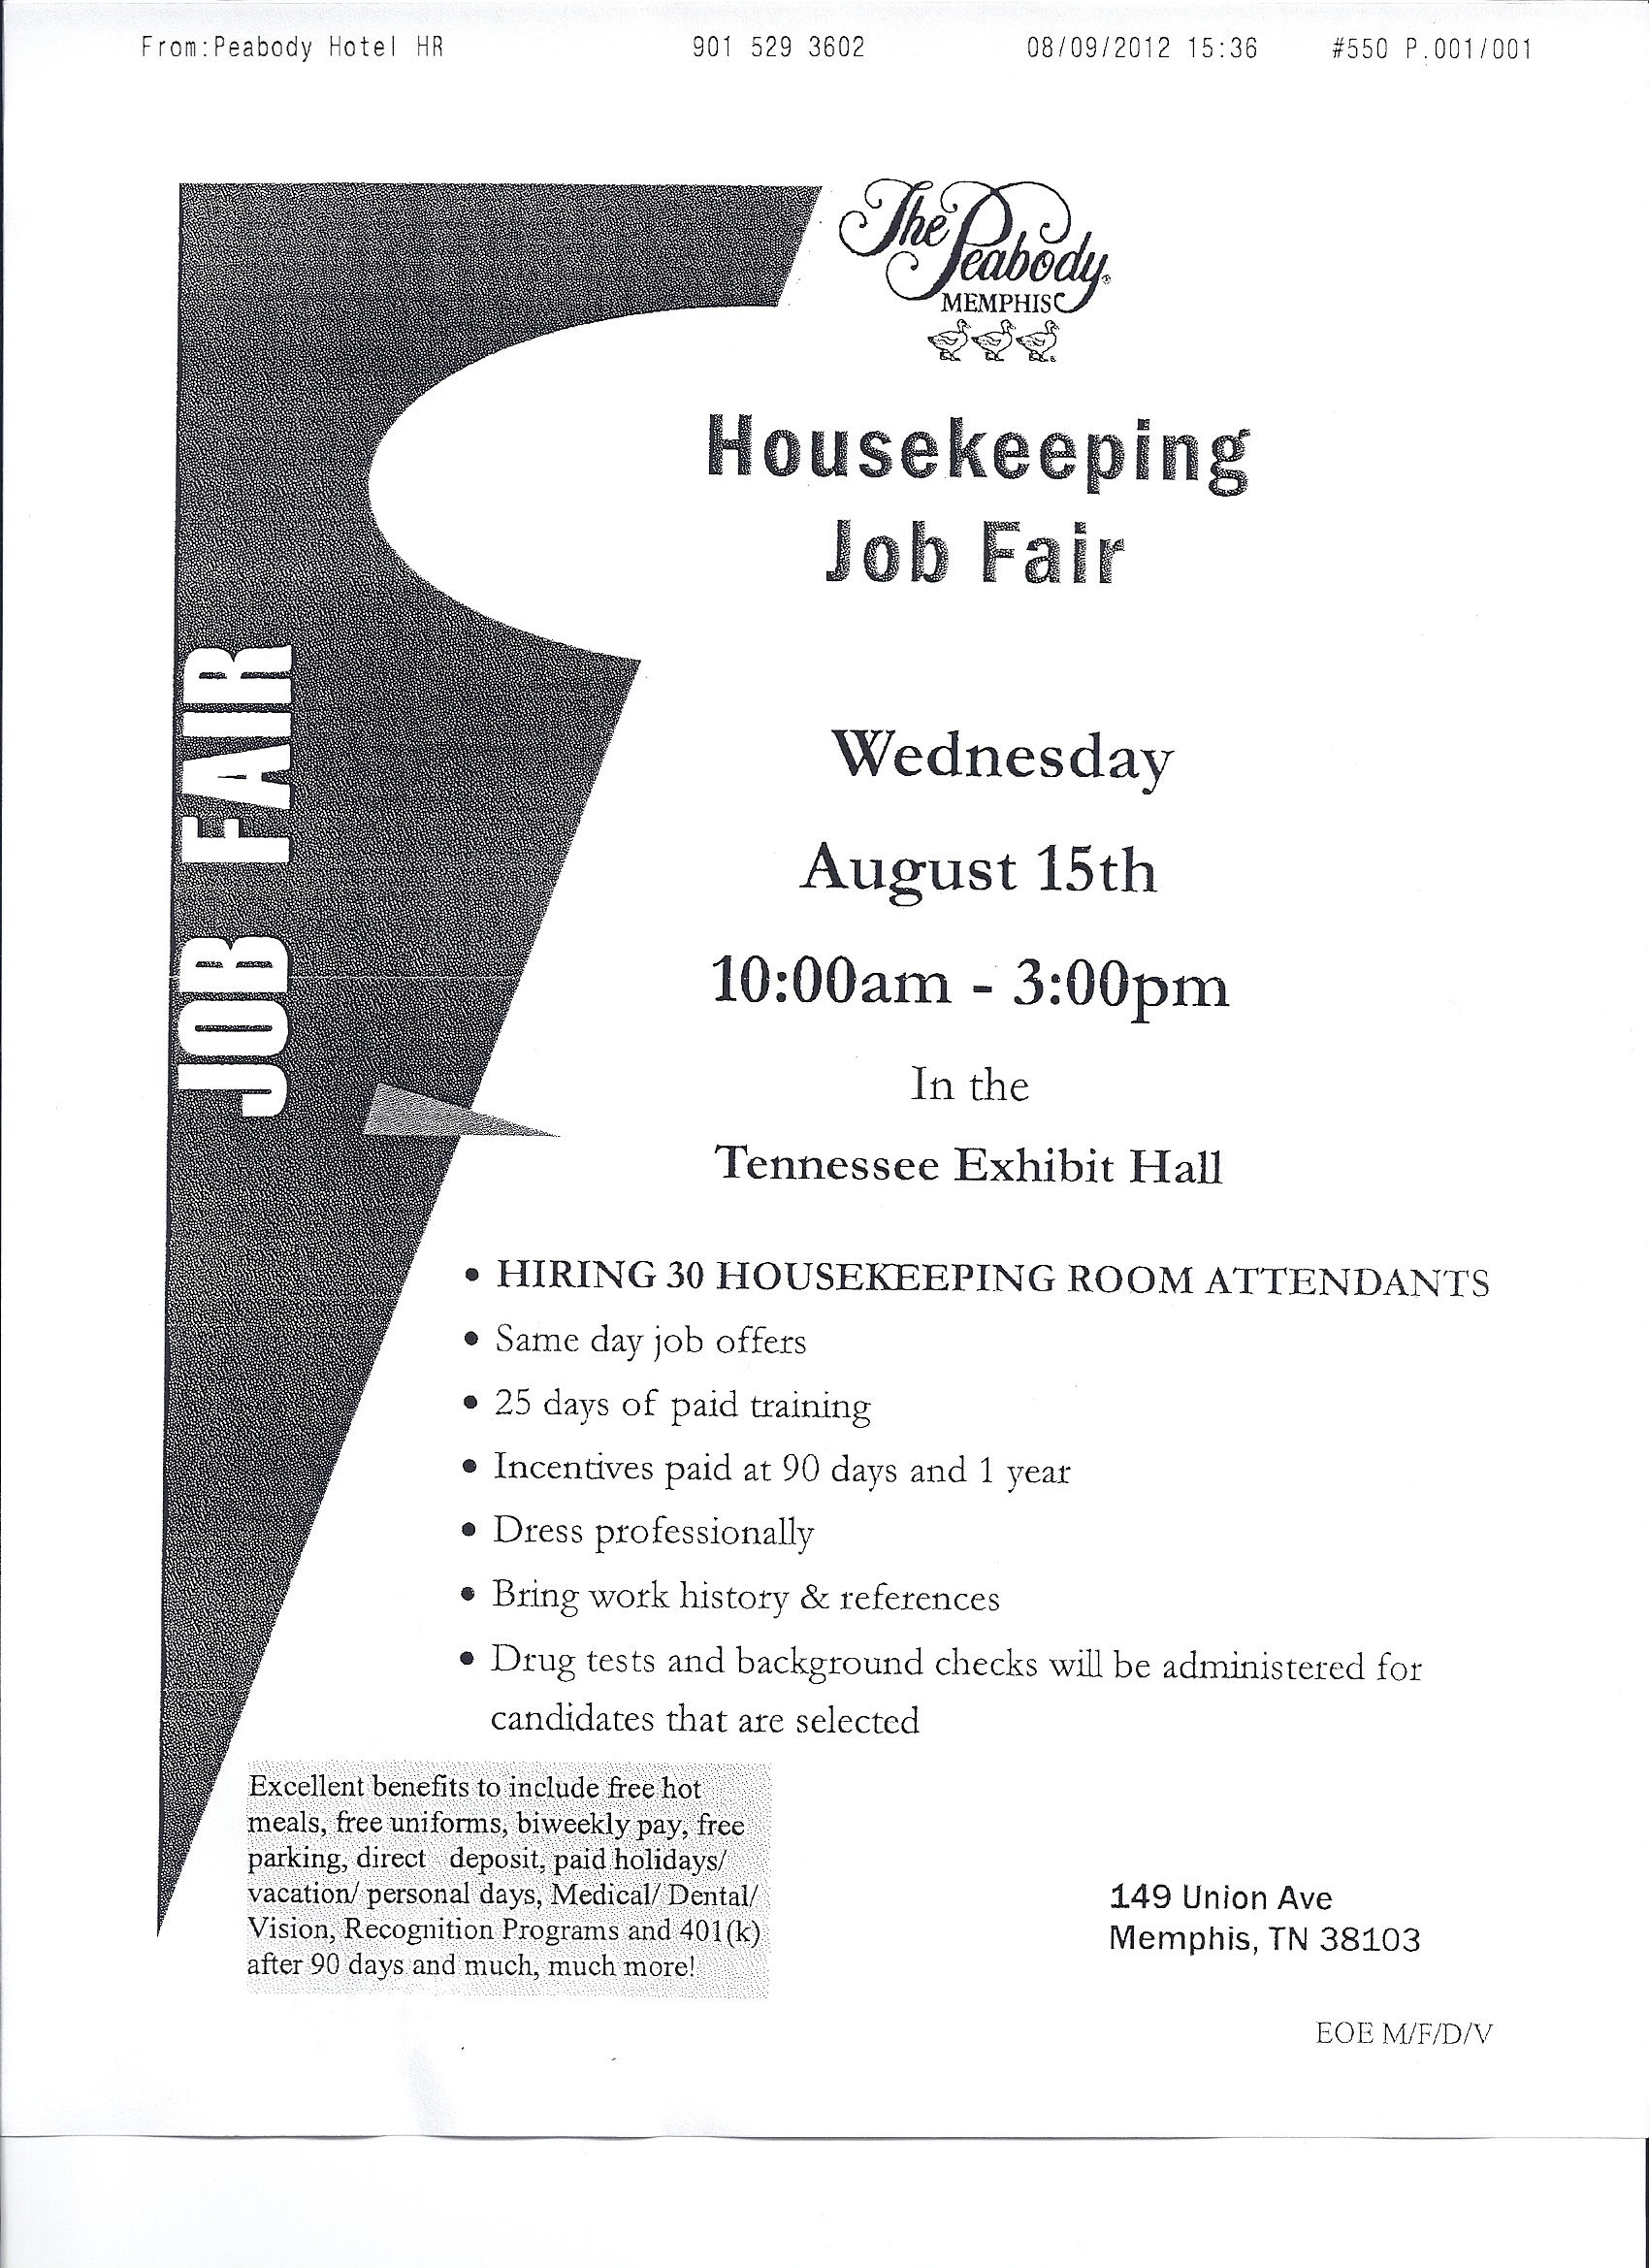 Housekeeping Job & Career News From The Memphis Public